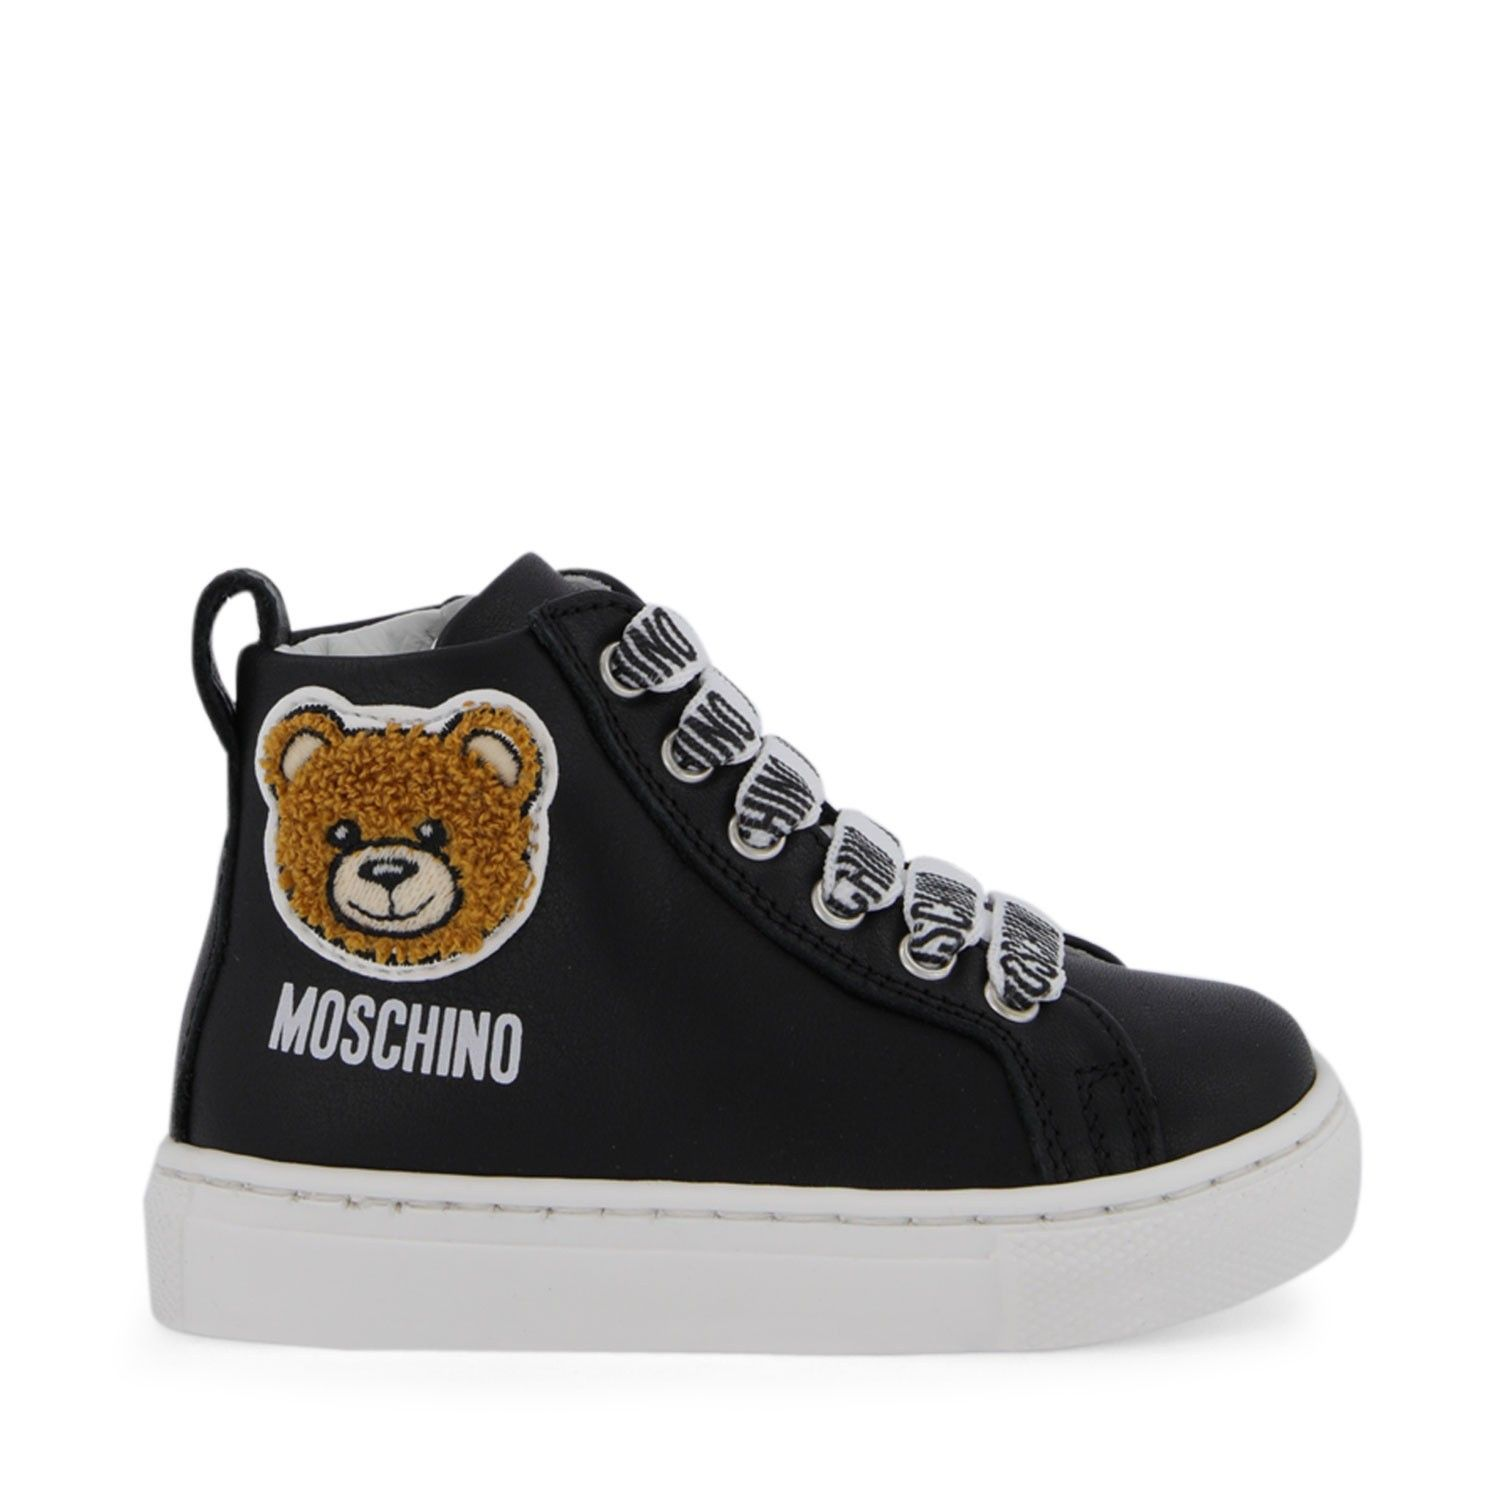 Picture of Moschino 65595 kids boots black